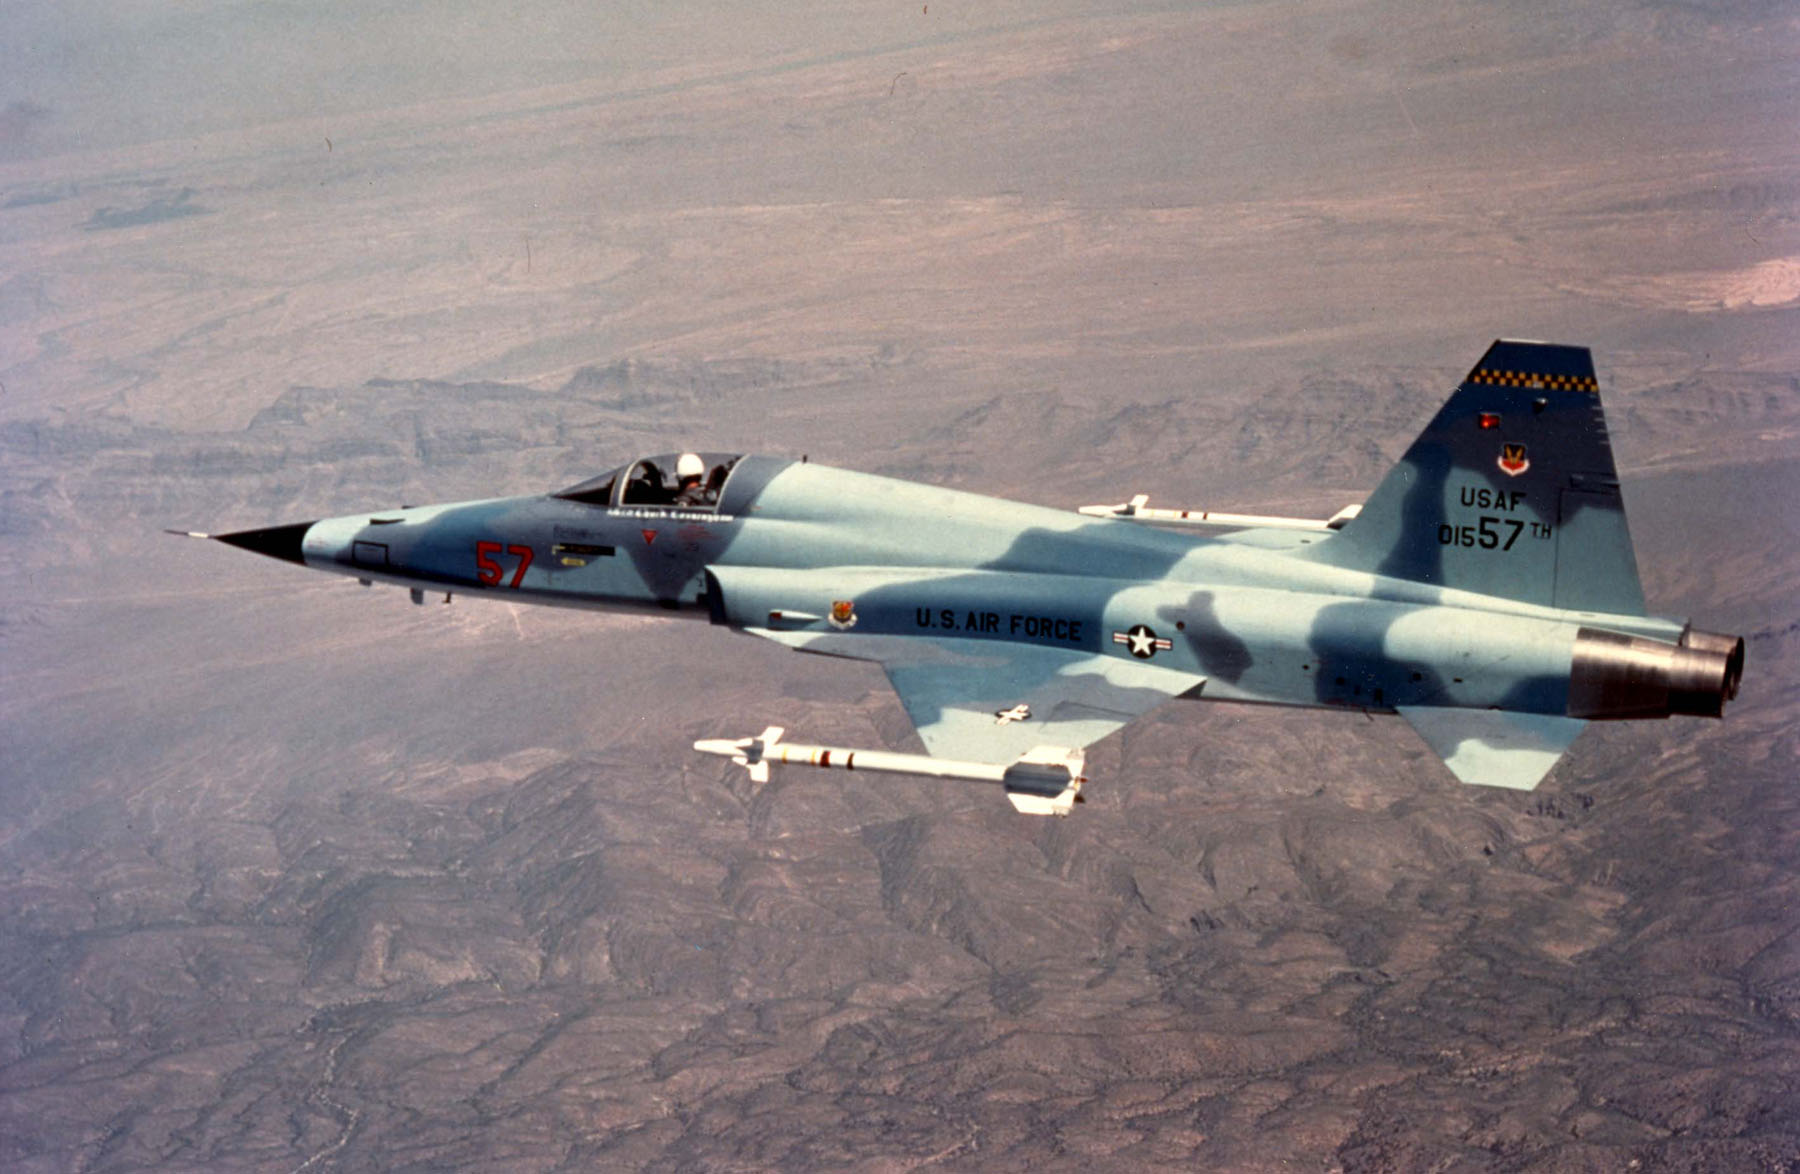 Northrop_F-5E_(Tail_No._01557)_061006-F-1234S-073.jpg